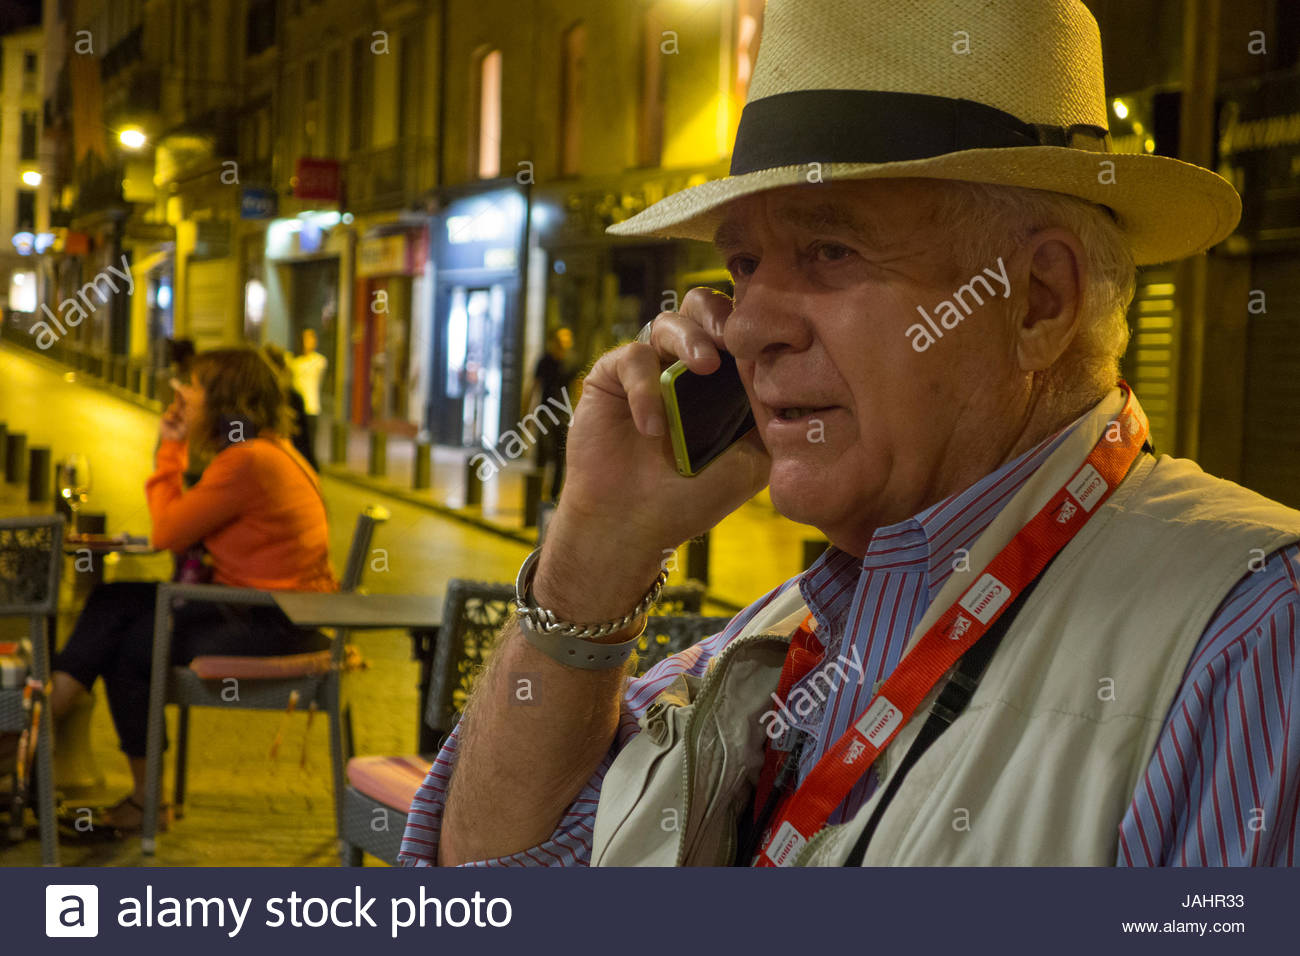 Photographer William Albert Allard, talking on a cellphone, in the streets of Perpignan, France. - Stock Image